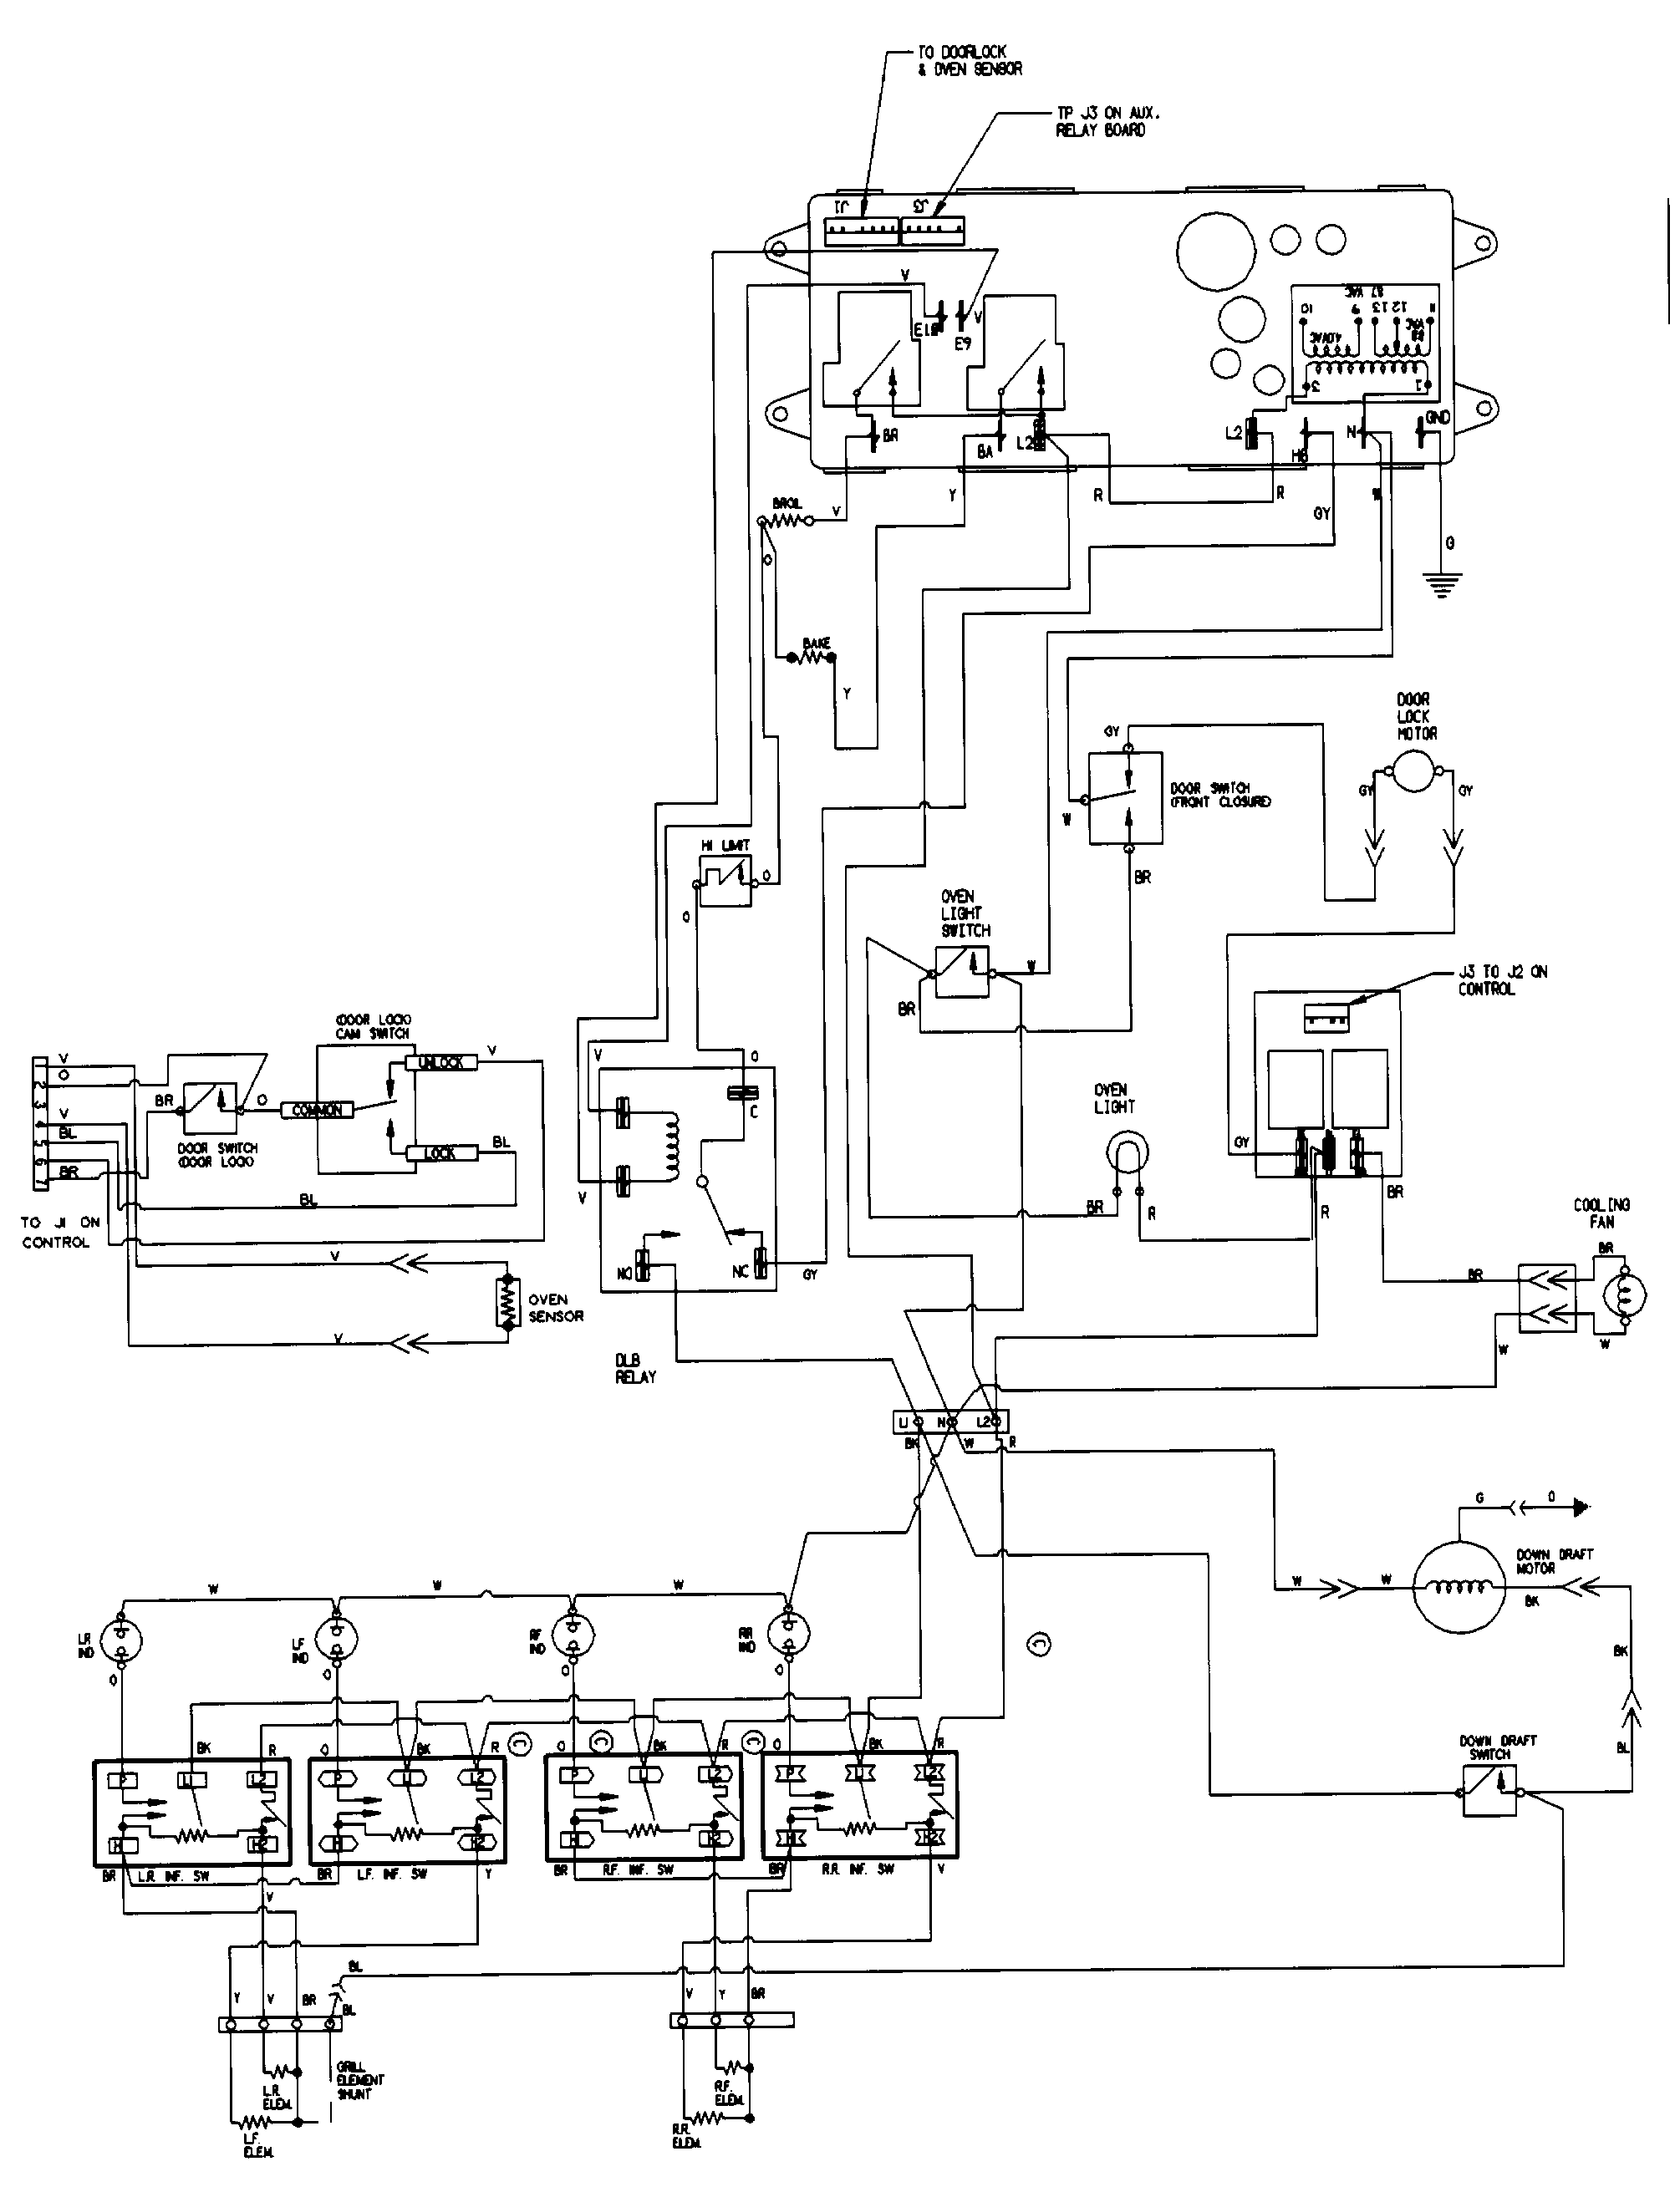 Stove Top Wiring Diagram - House Wiring Diagram Symbols •